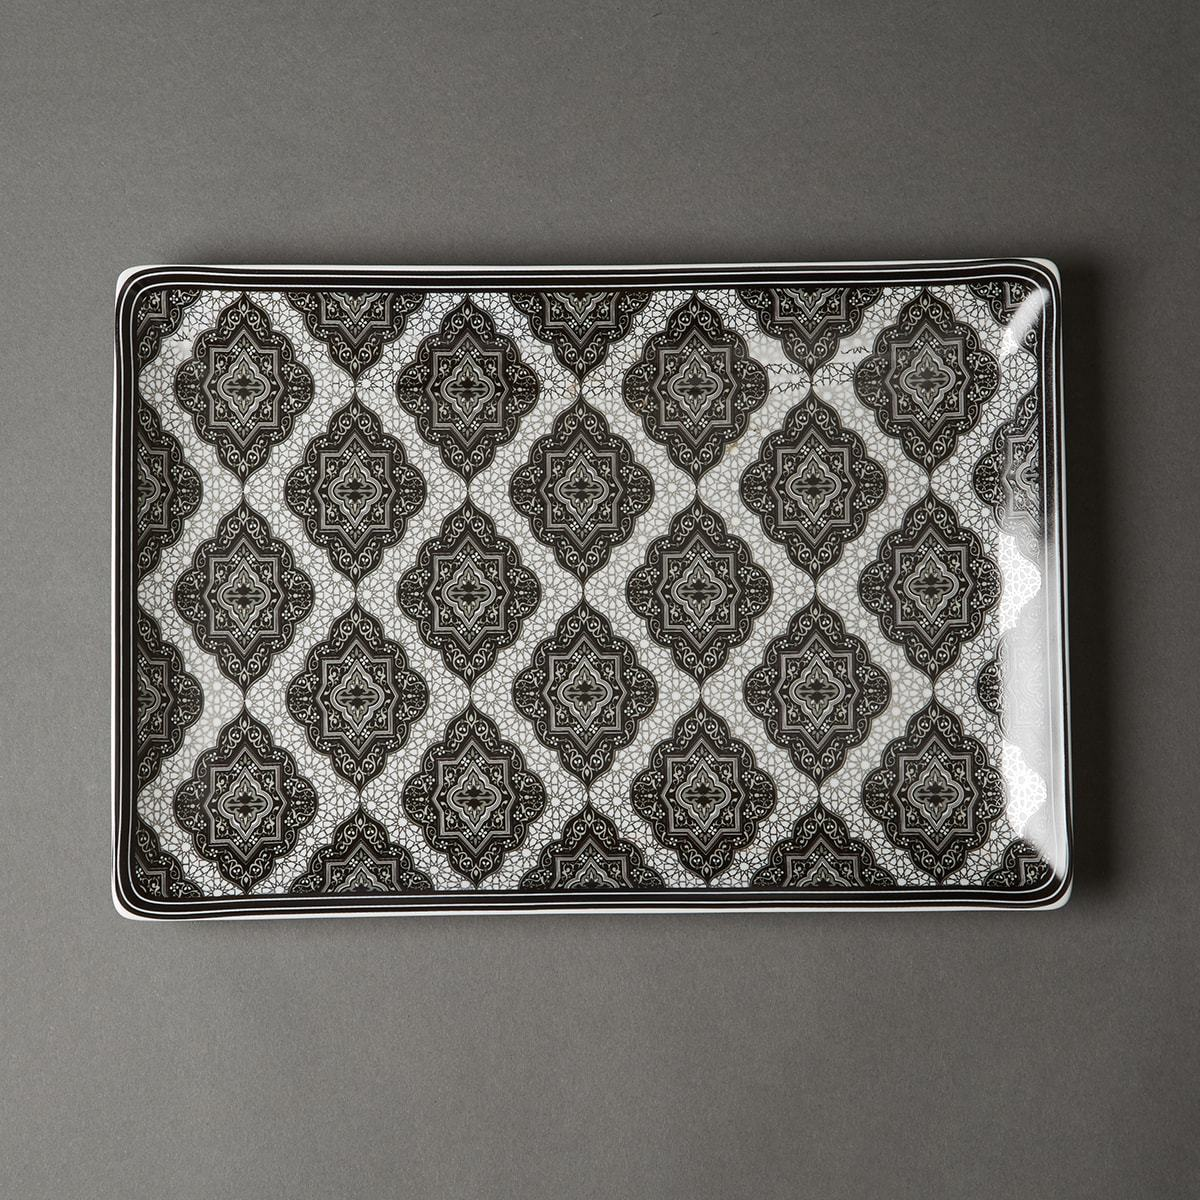 Black & White Awadh Porcelain Rectangle Platter (Large) by Ritu Kumar Home - Home Artisan